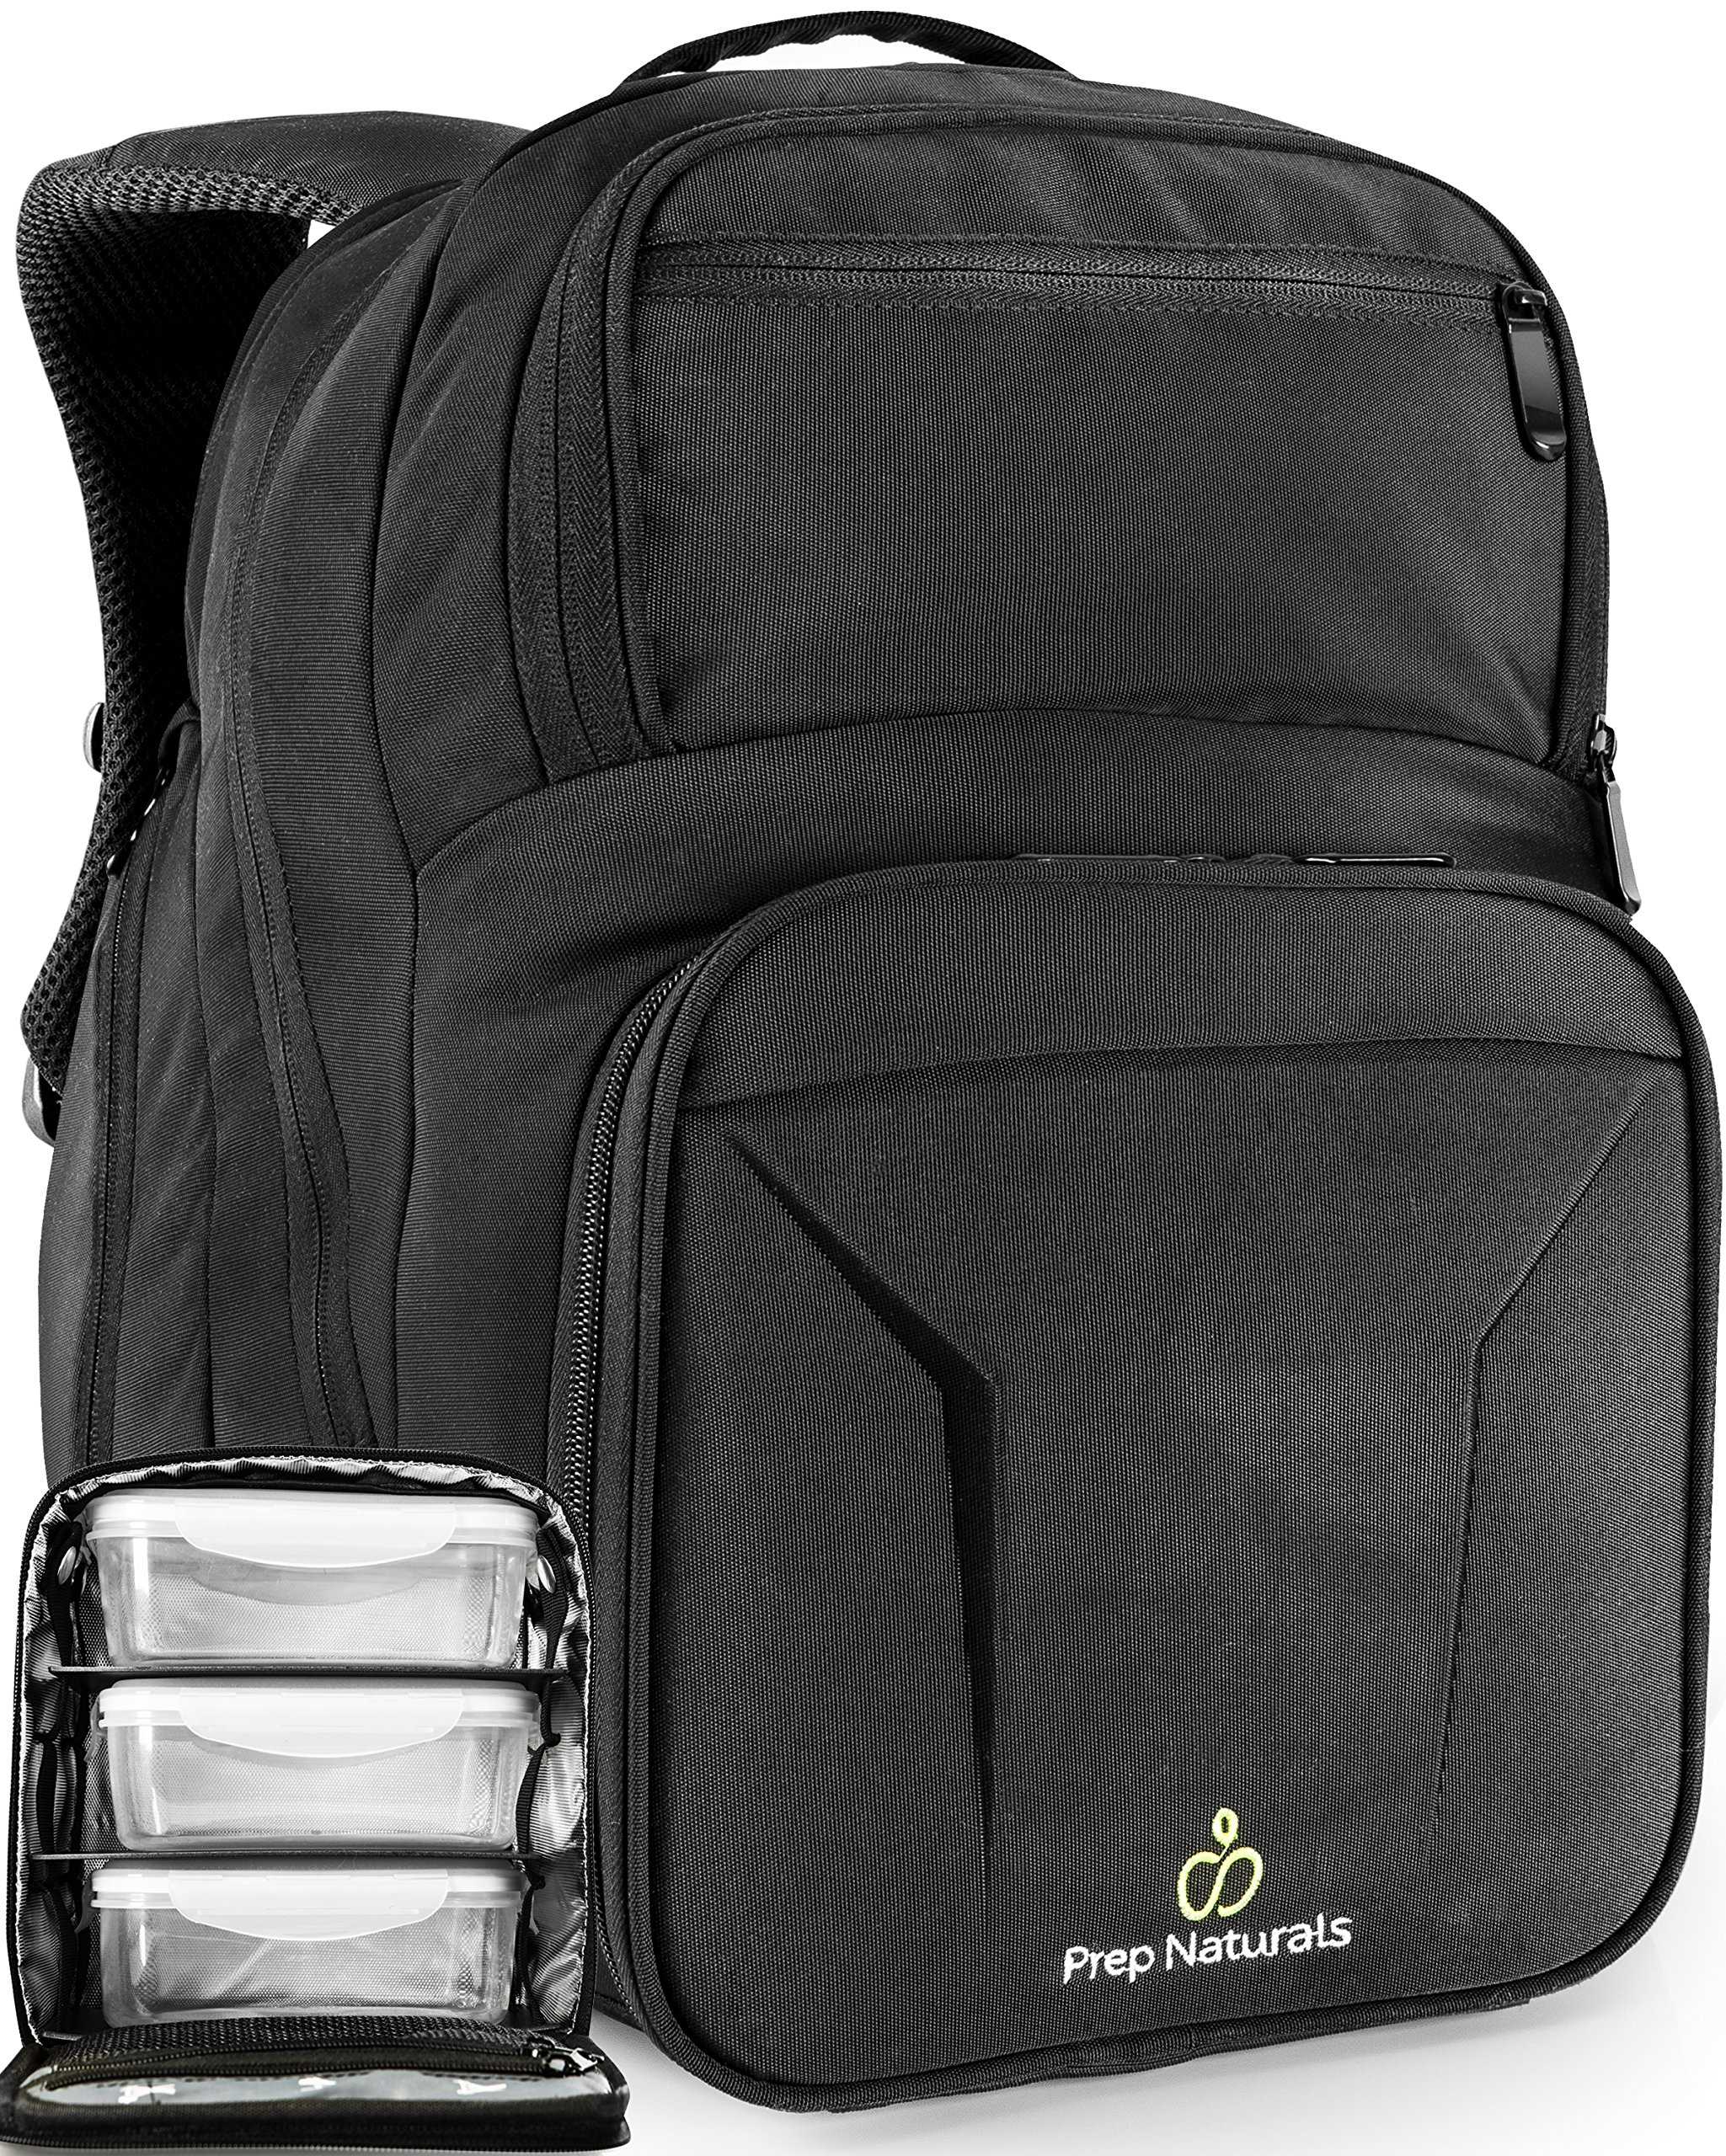 Meal Prep Bag Meal Prep Lunch Box - Insulated Lunch Bag Backpack Cooler Lunchbox - Lunch Boxes for Adults - Backpack for Men - Best Lunch Bags Cooler Bags Cooler Backpack Lunch Bag for Men